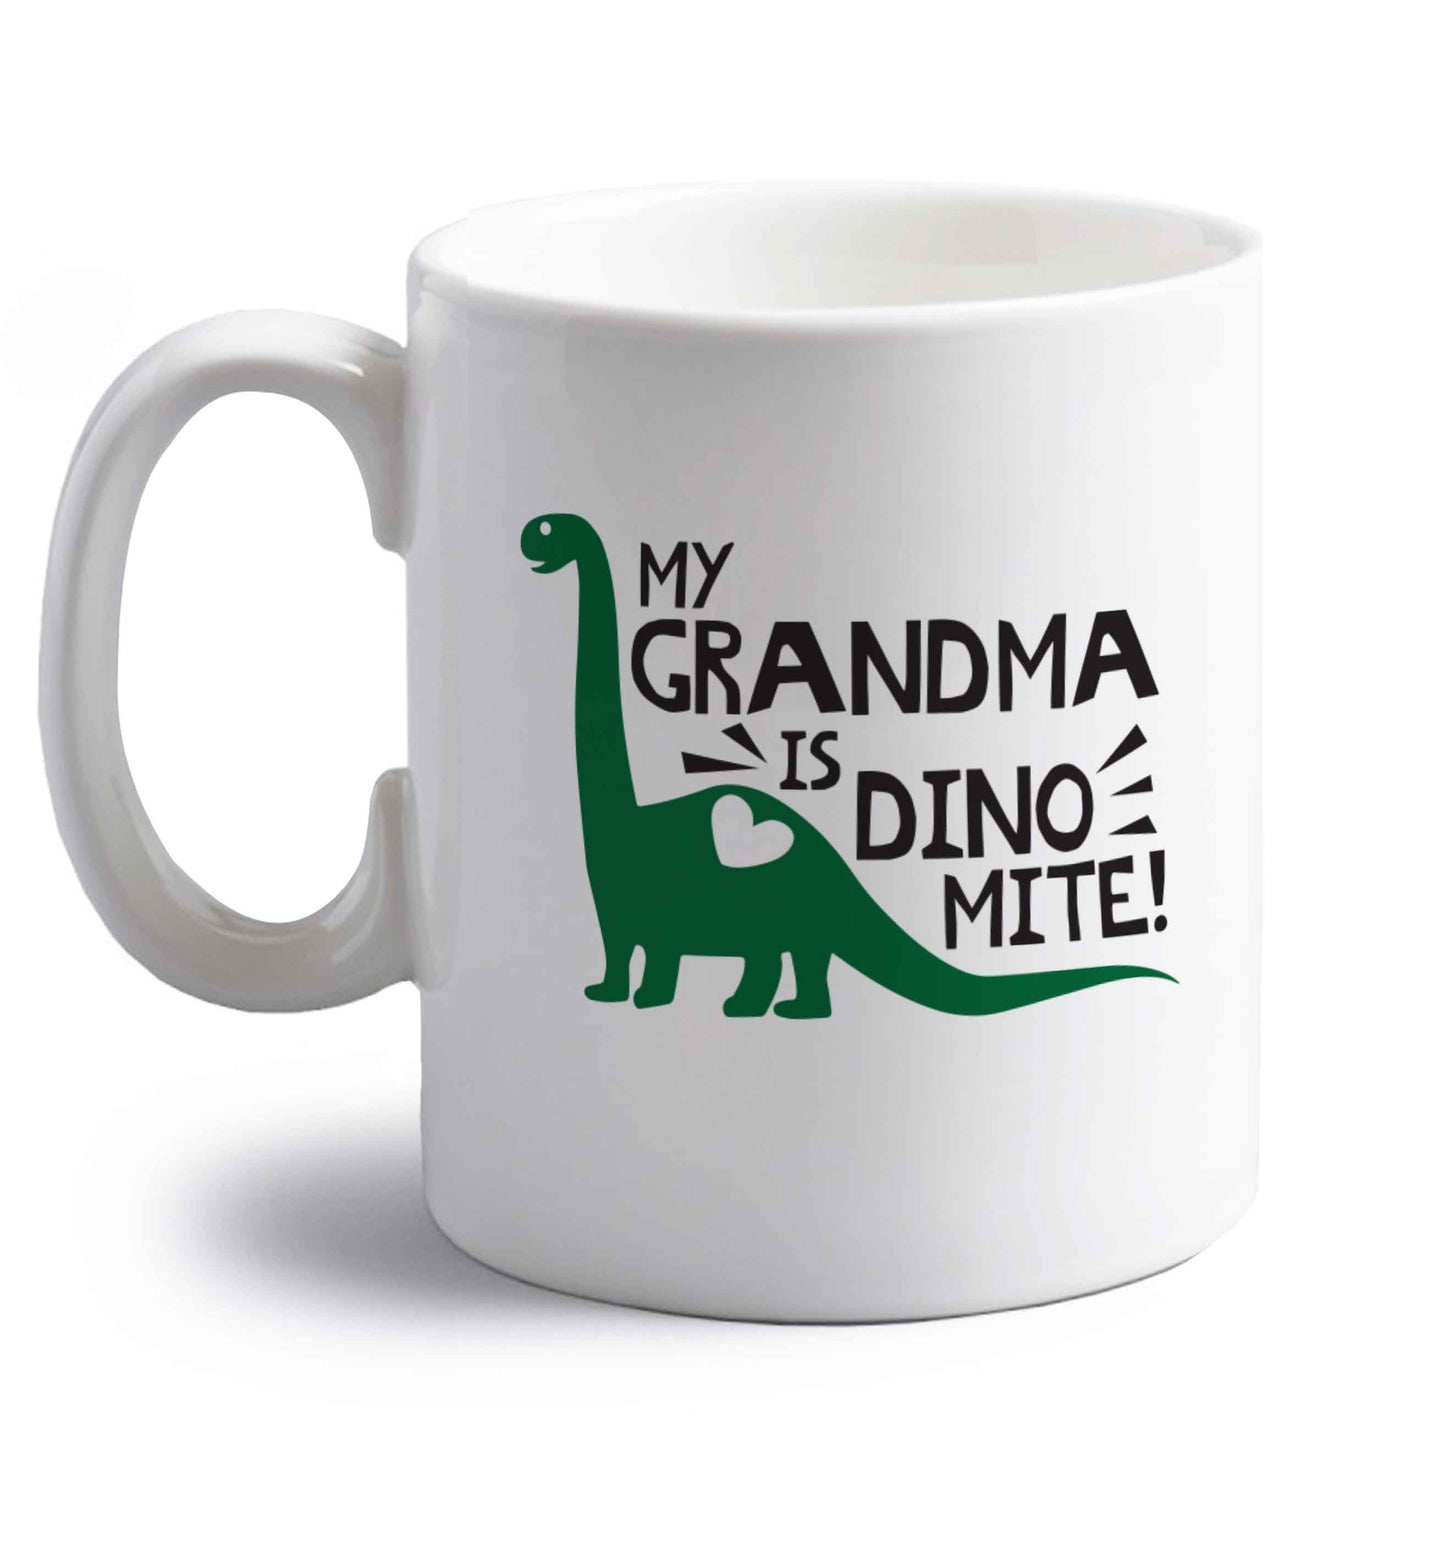 My grandma is dinomite! right handed white ceramic mug